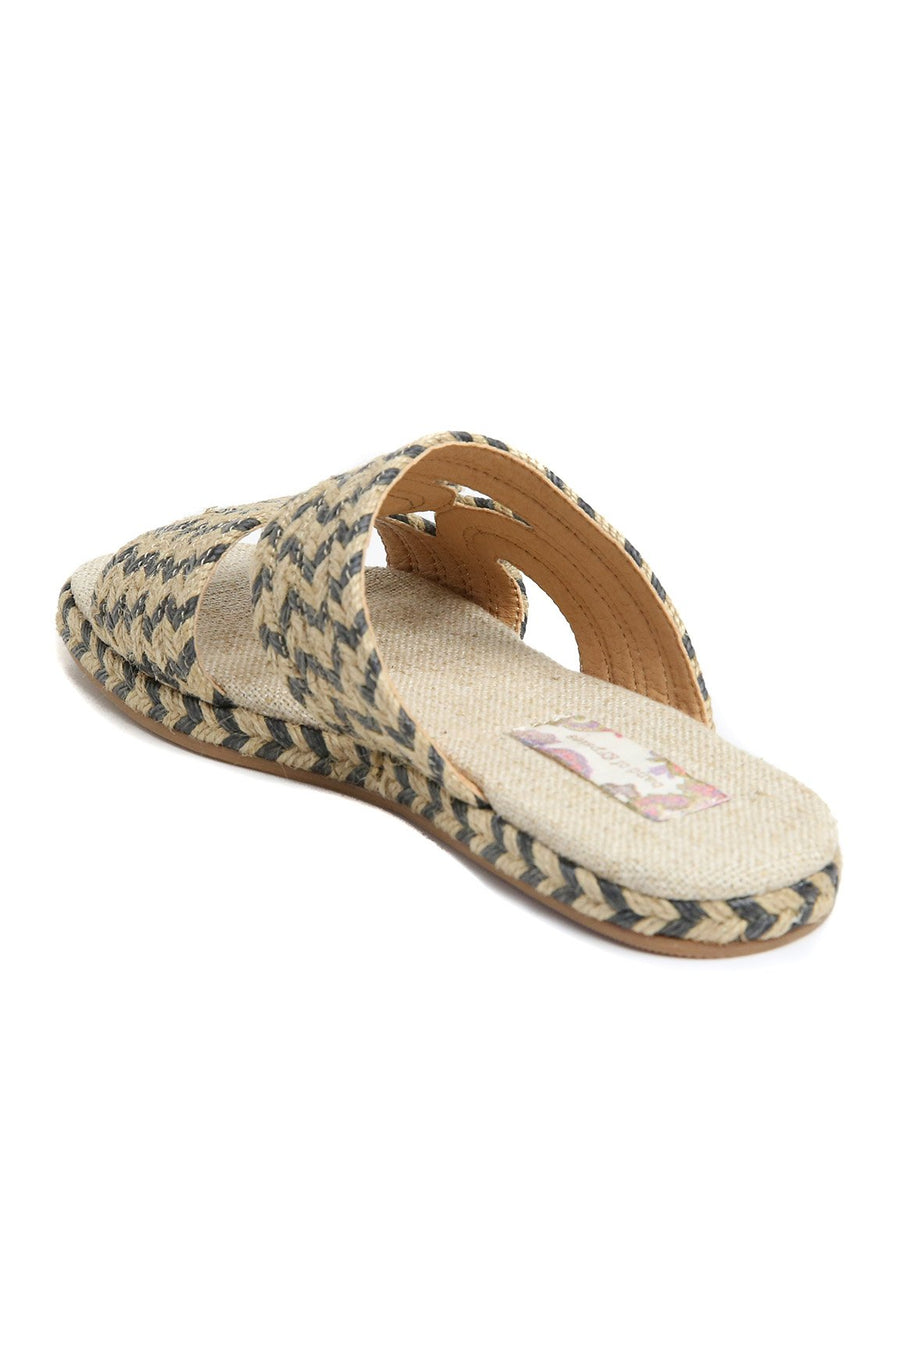 Playa Natural Black Braided Jute Slide Sandal Master